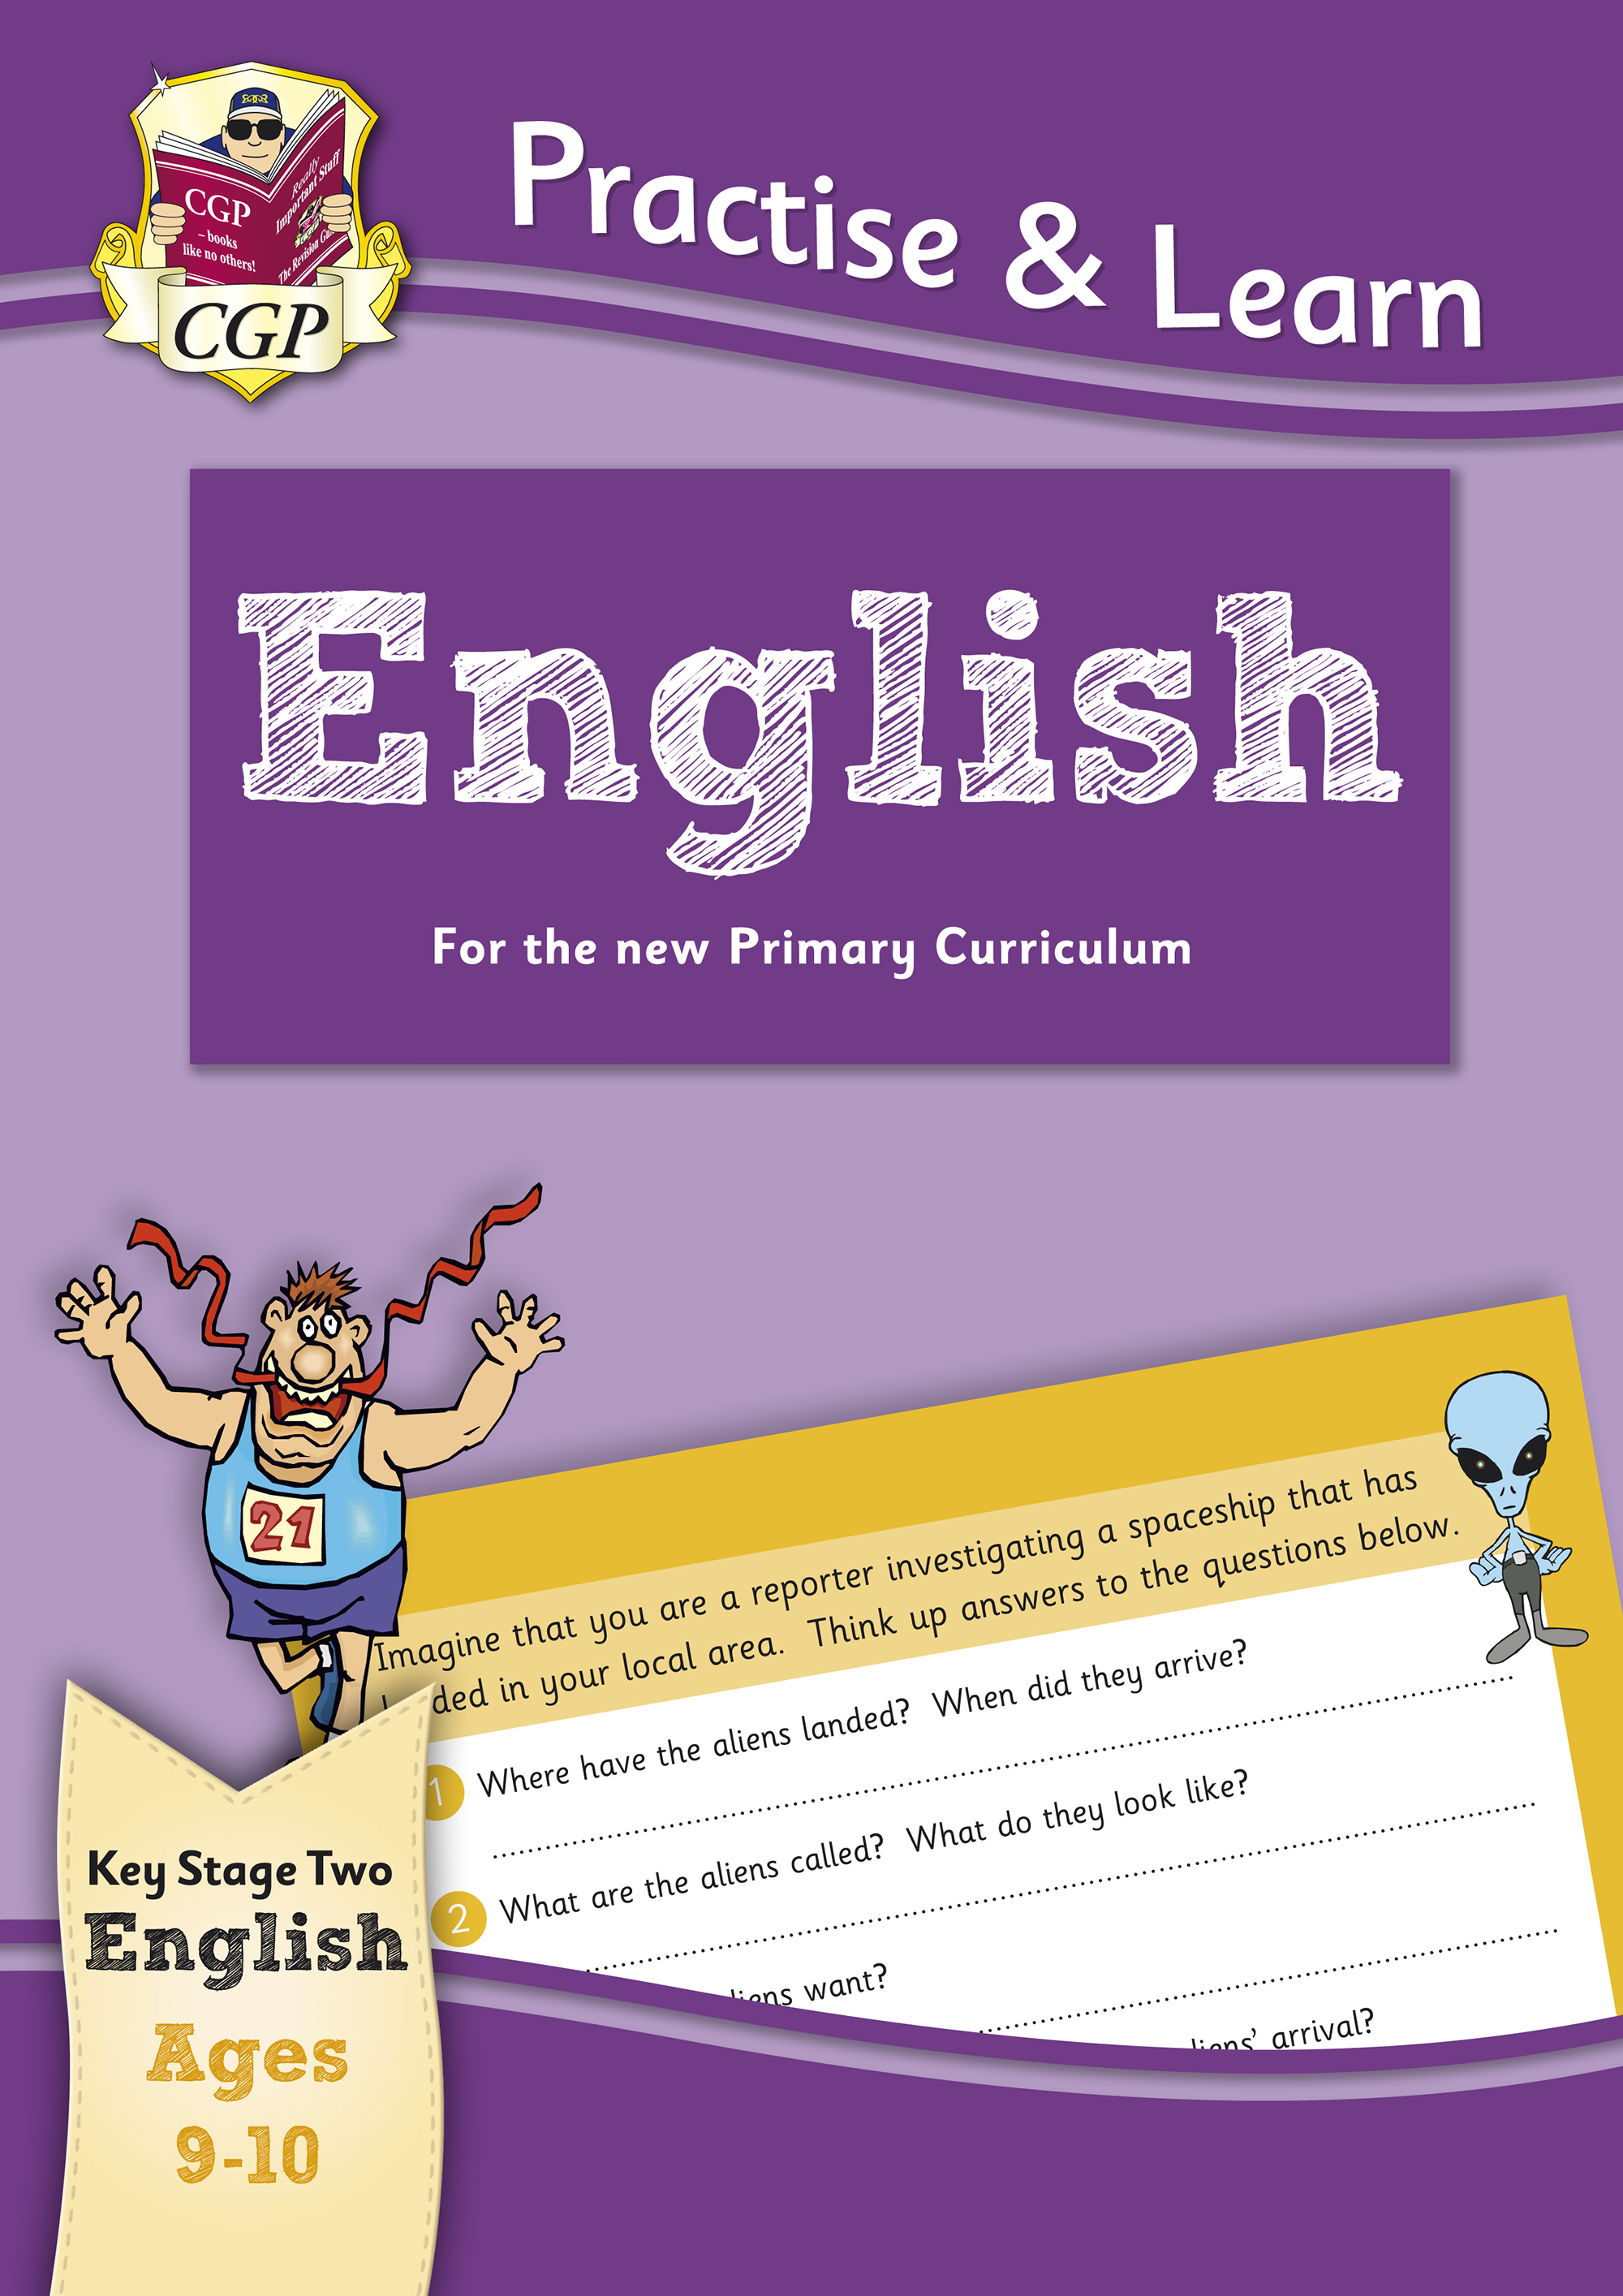 EP5Q22 - New Practise & Learn: English for Ages 9-10